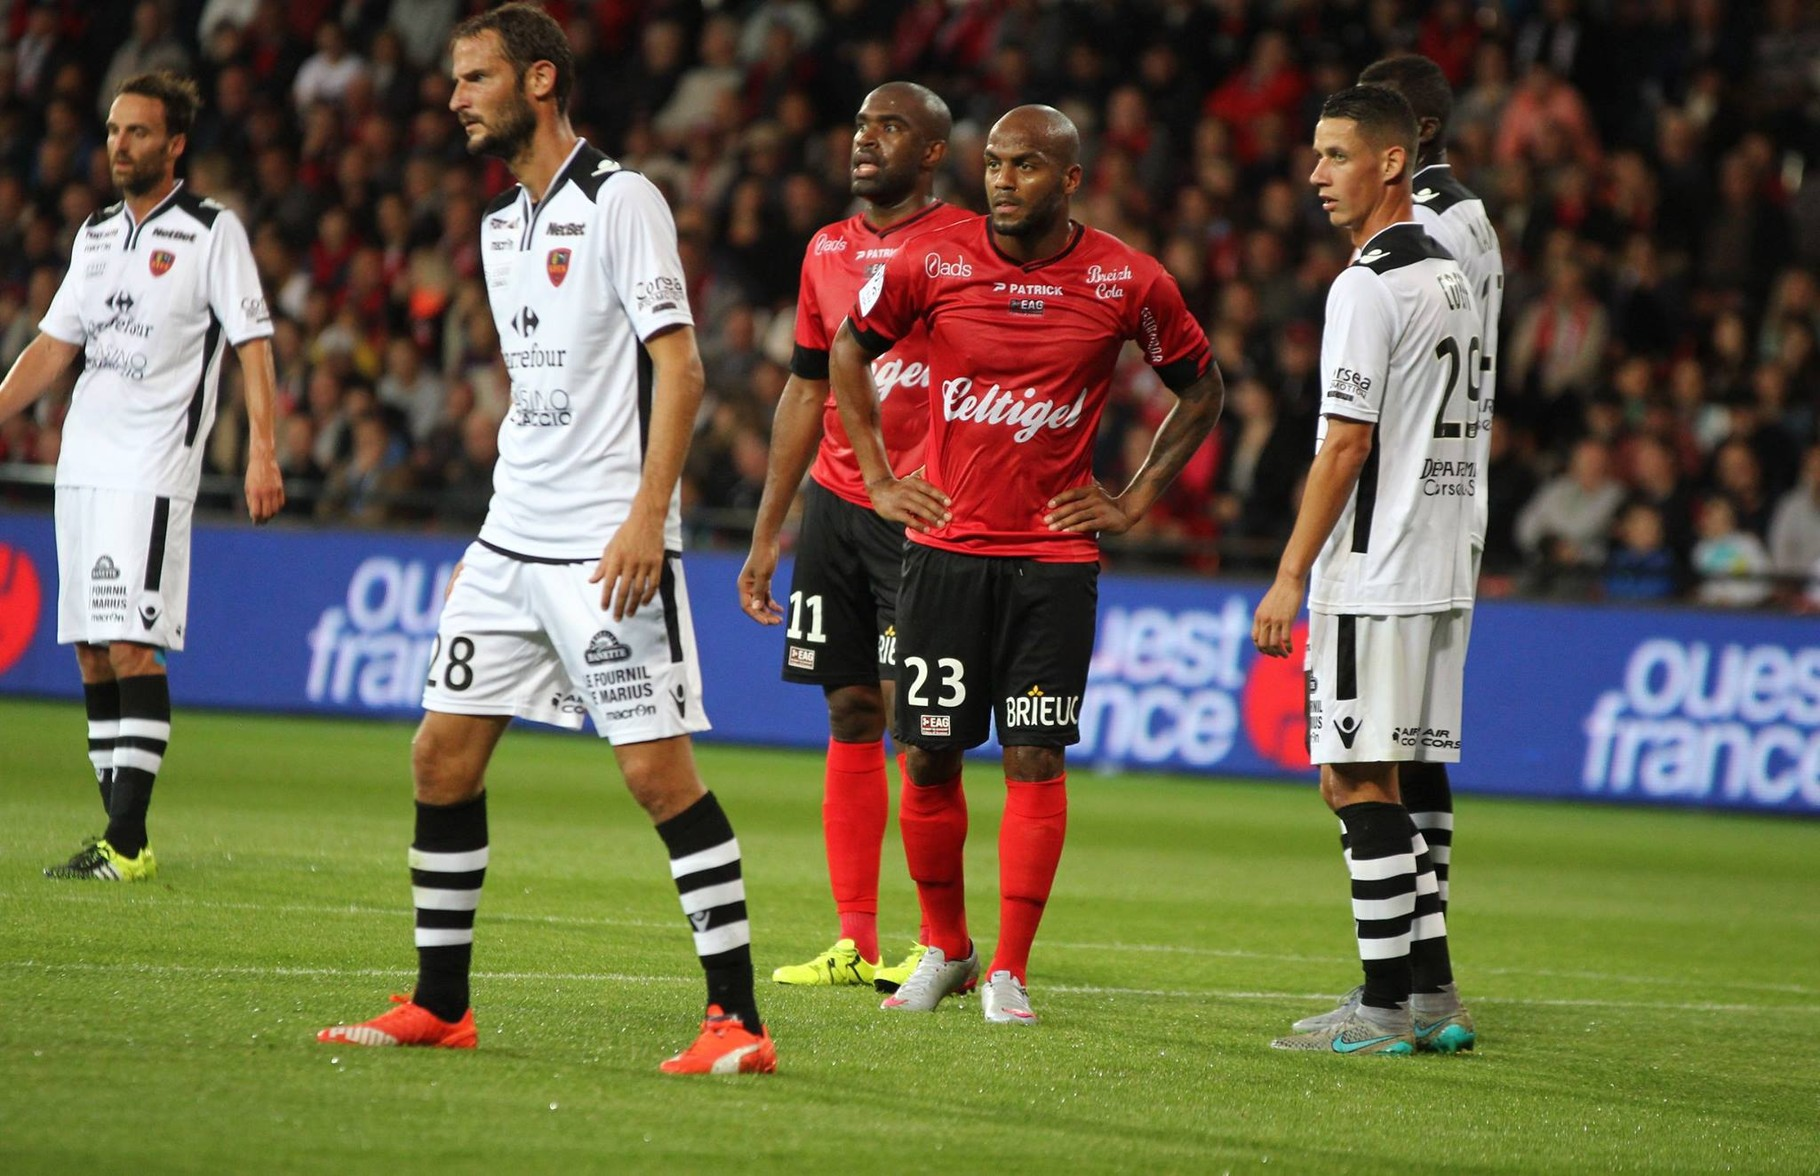 Photo site off EA Guingamp